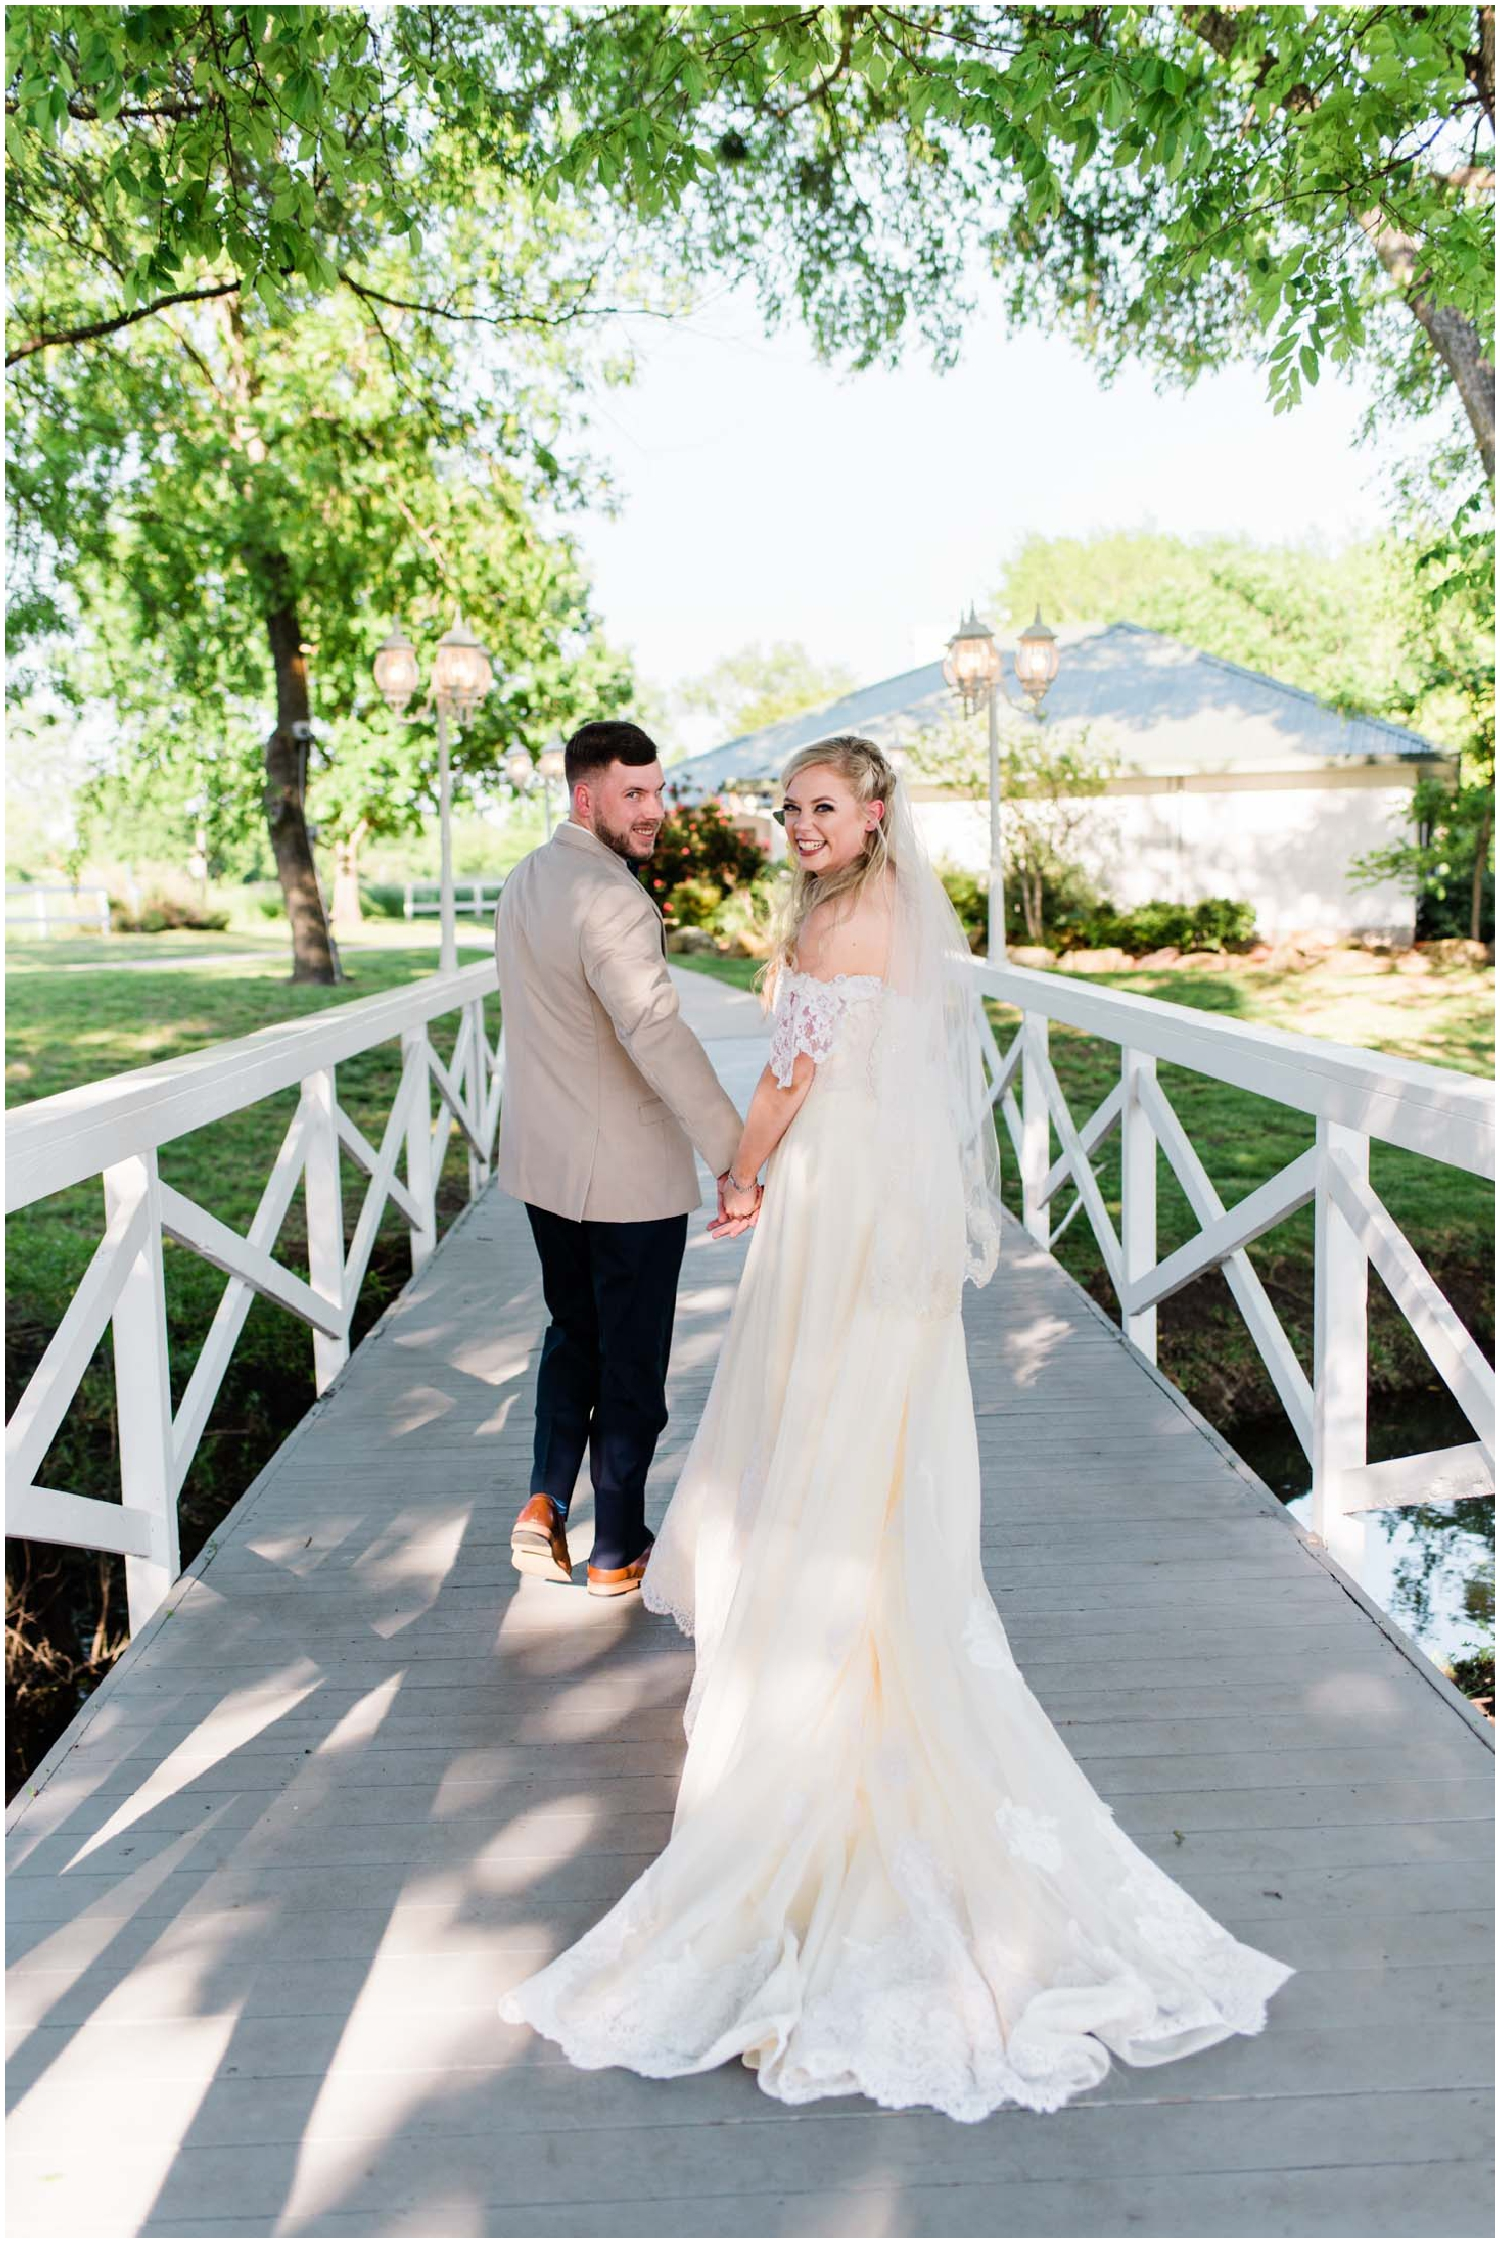 26-Willow-Creek-Waxahachie-wedding-photography.jpg